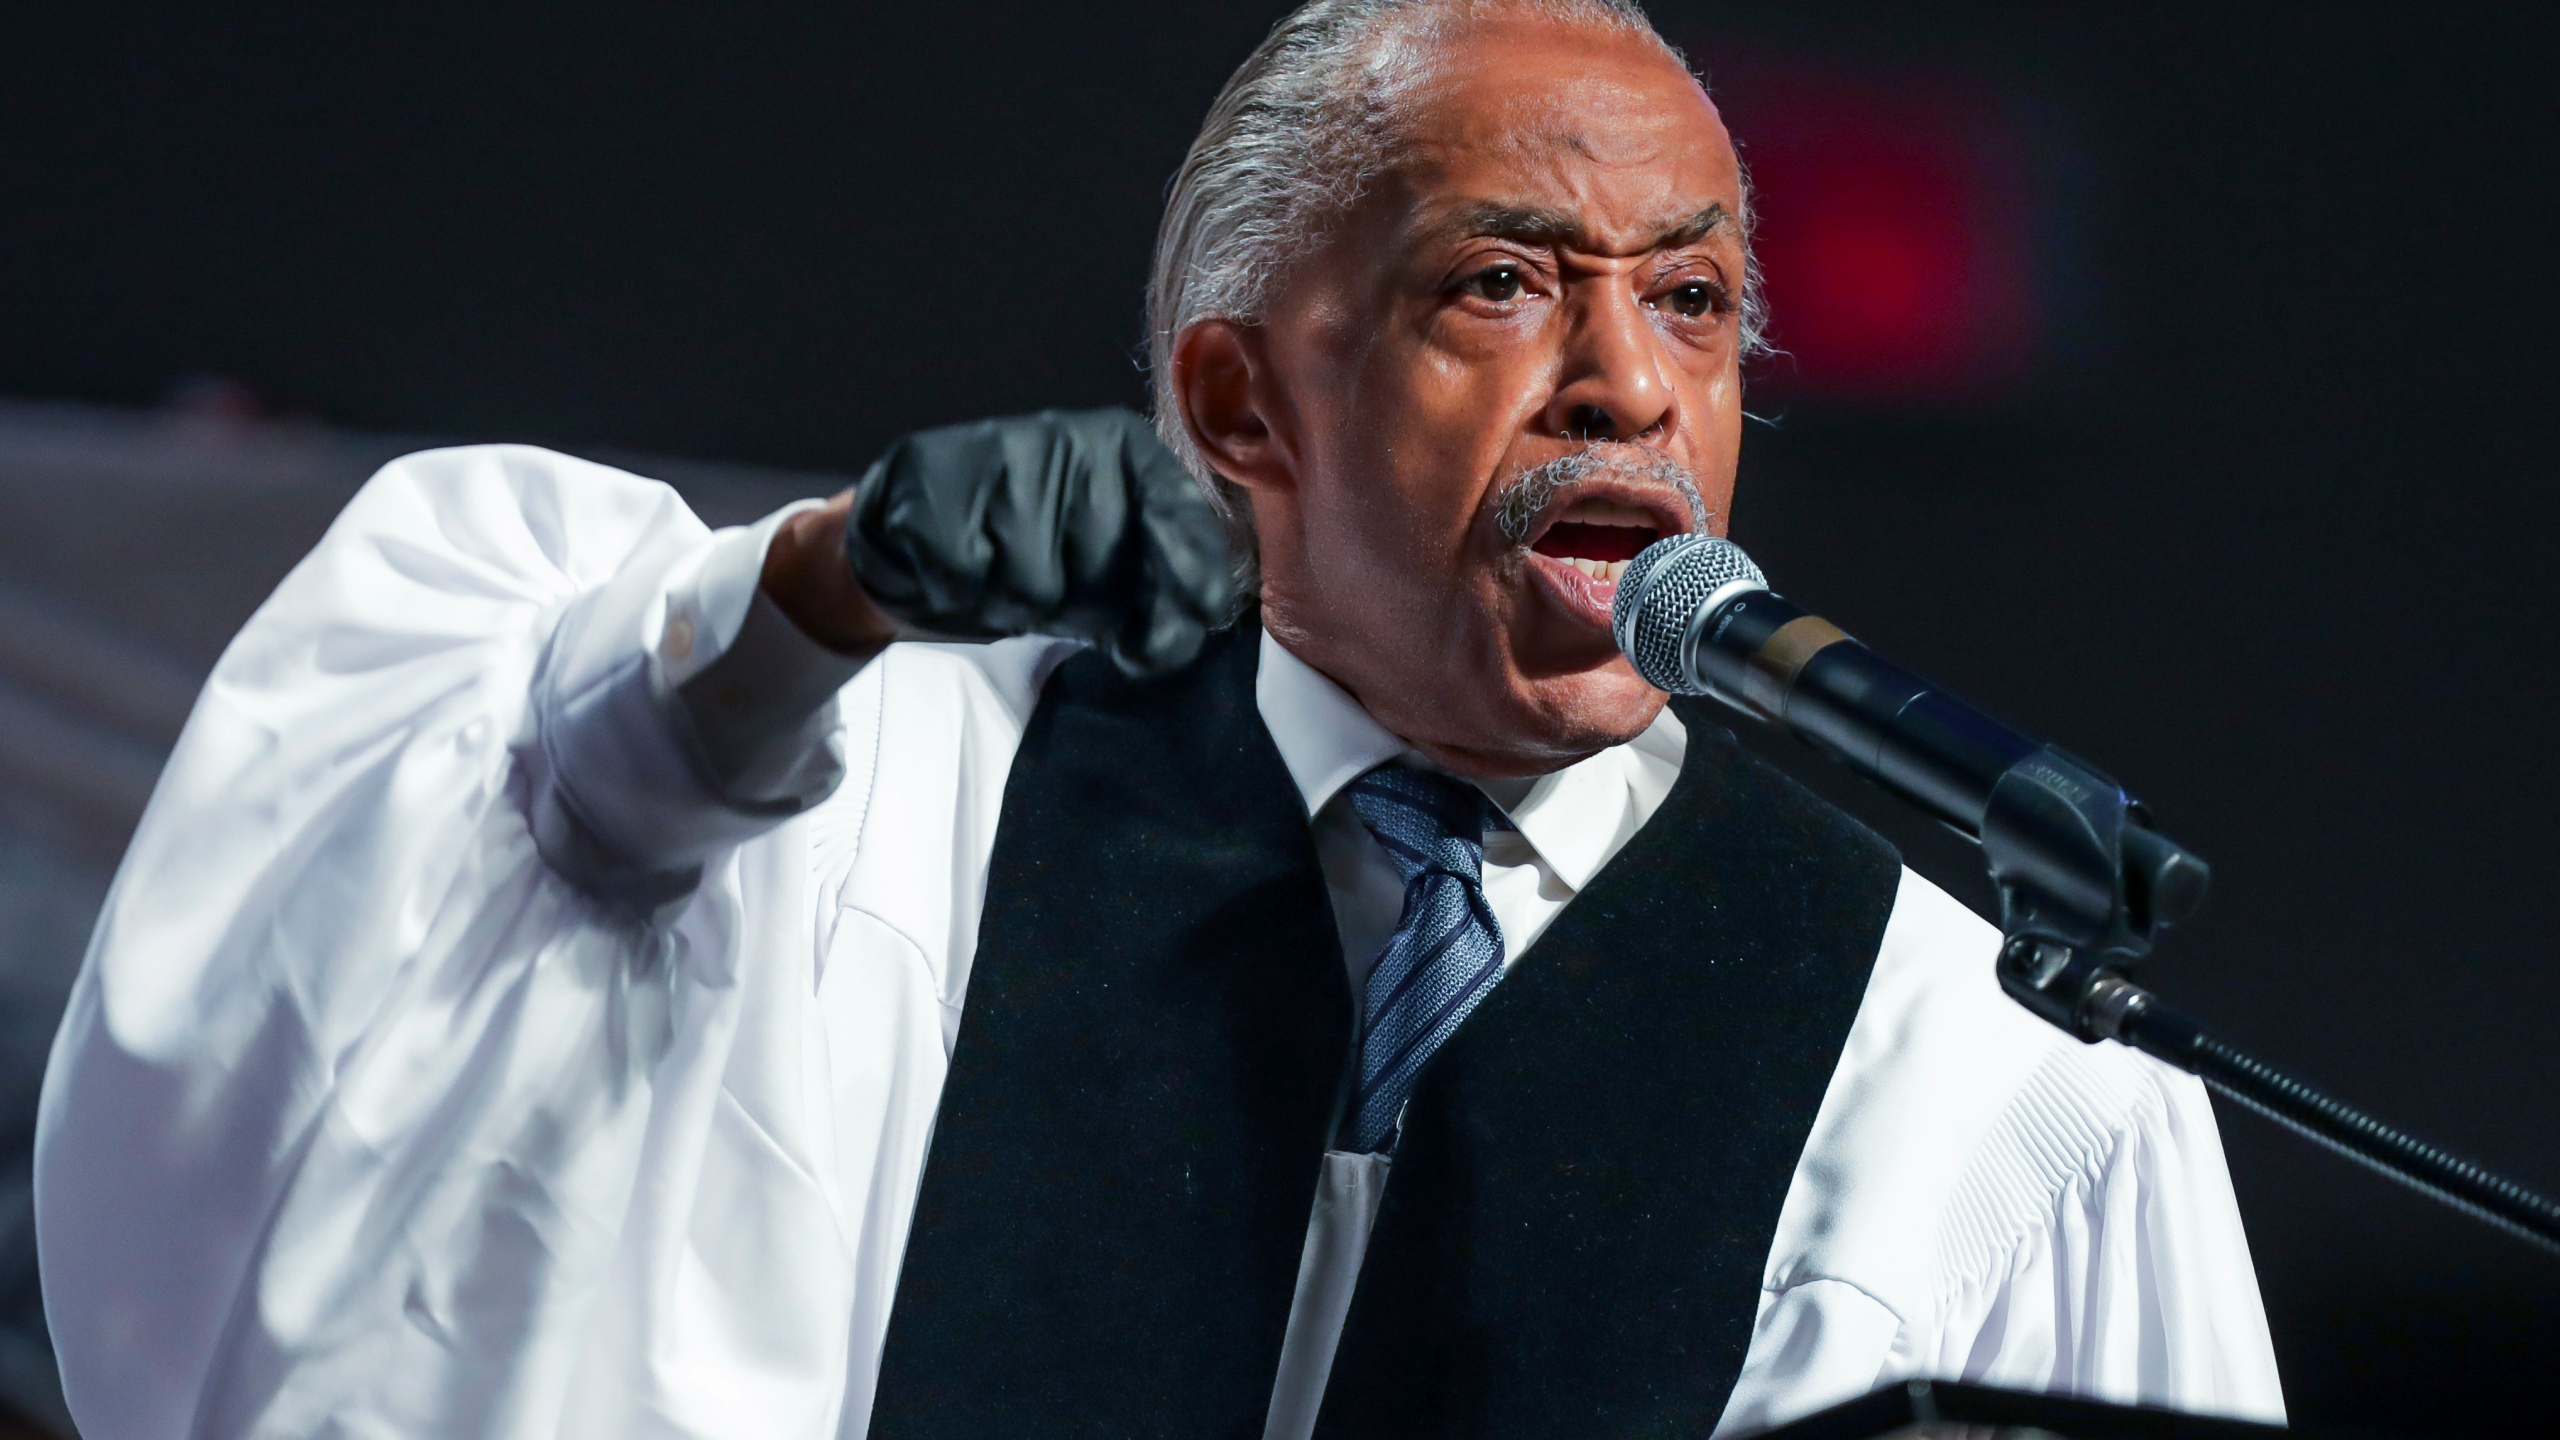 The Rev. Al Sharpton speaks during the funeral for George Floyd at The Fountain of Praise church in Houston on June 9, 2020. (Godofredo A. Vásquez/Houston Chronicle via Associated Press, Pool)